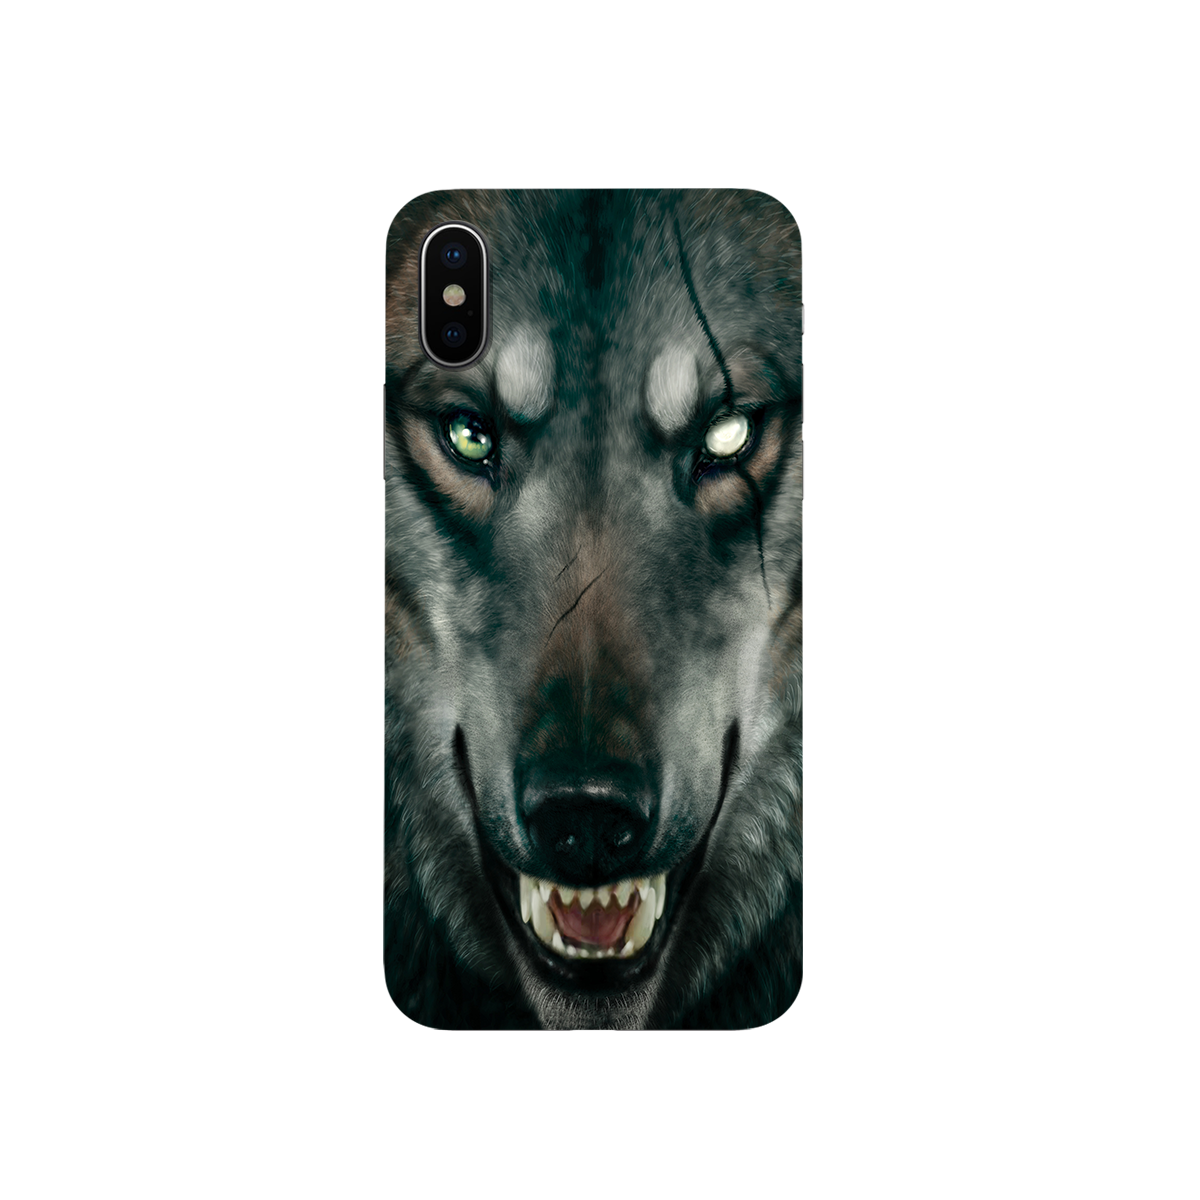 Hunger Phone Case Iphone 6